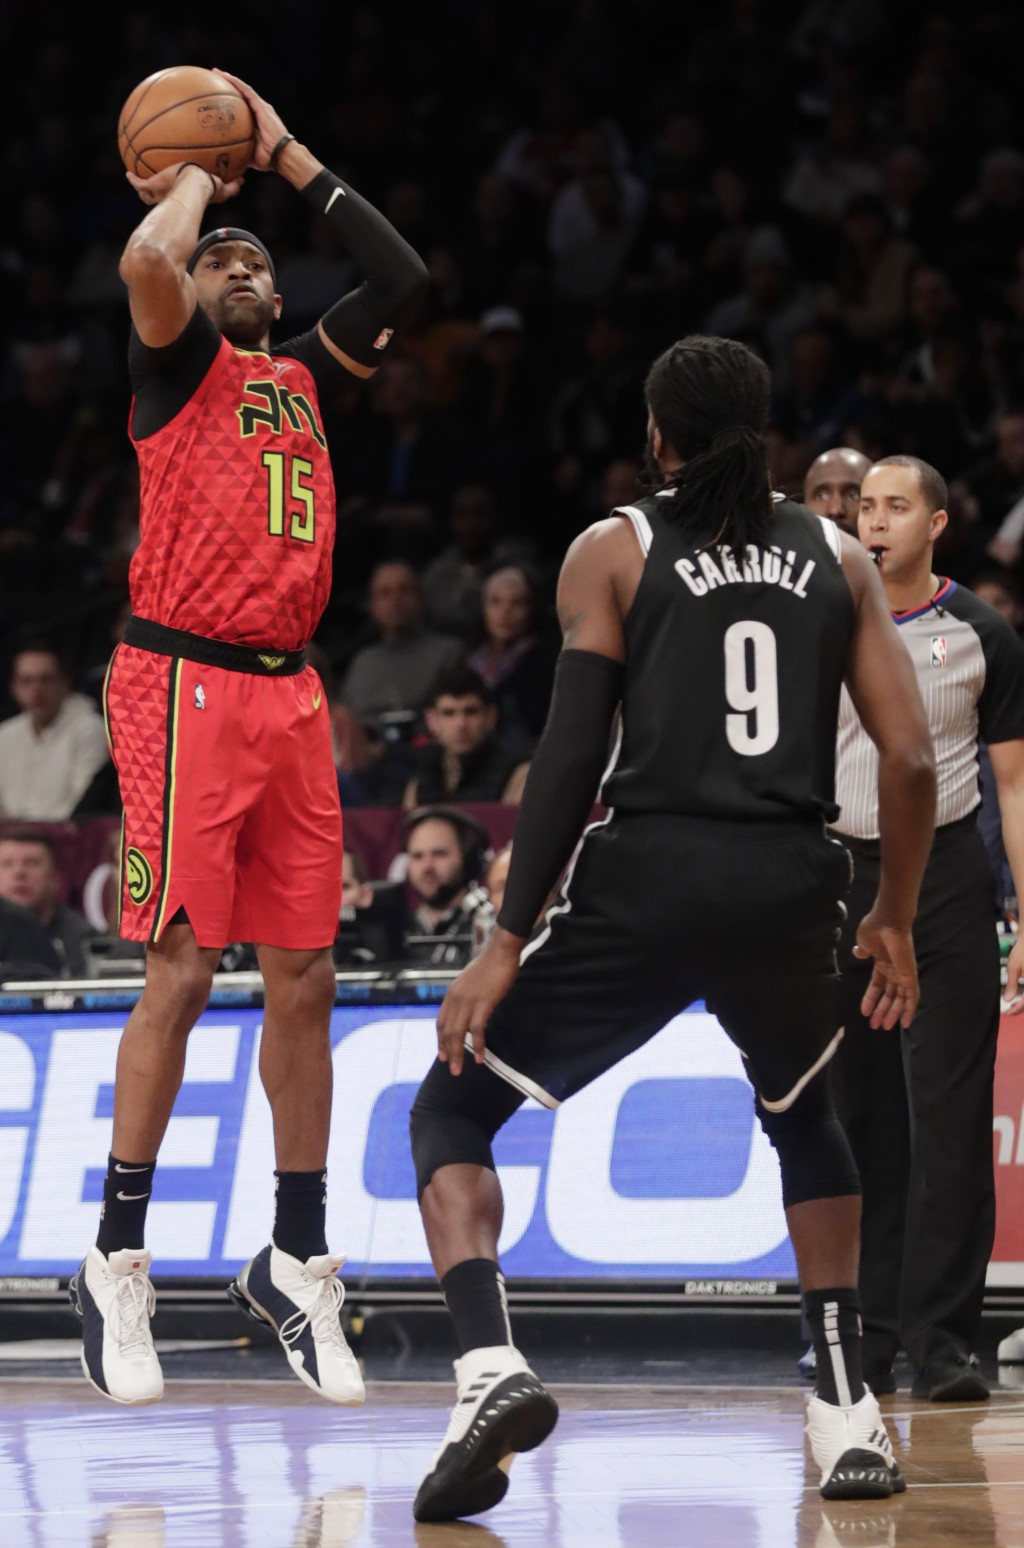 Atlanta Hawks' Vince Carter (15) shoots over Brooklyn Nets' DeMarre Carroll (9) during the first half of an NBA basketball game Wednesday, Jan. 9, 201